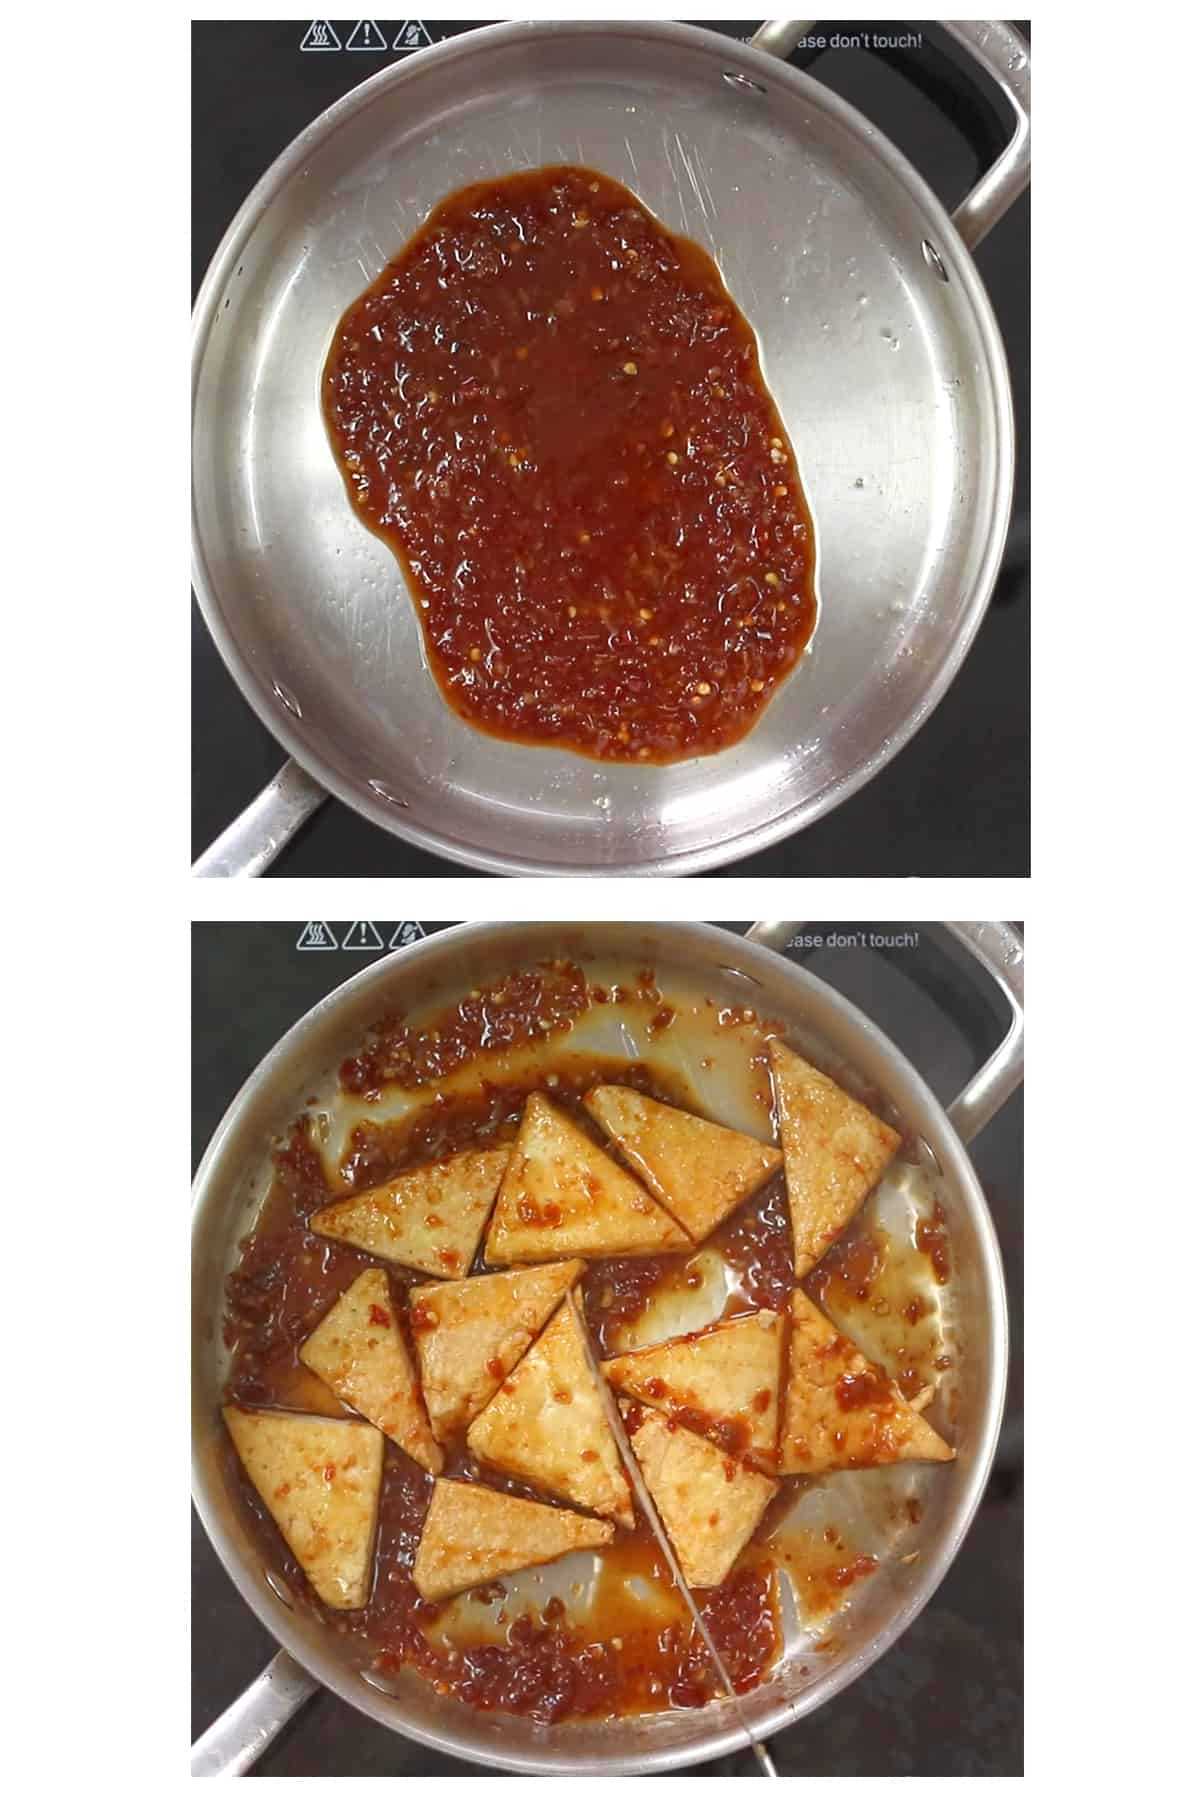 two images: top shows chili garlic sauce ingredients cooking in skillet, the bottom shows pan fried tofu wedges added to chili garlic sauce in skillet